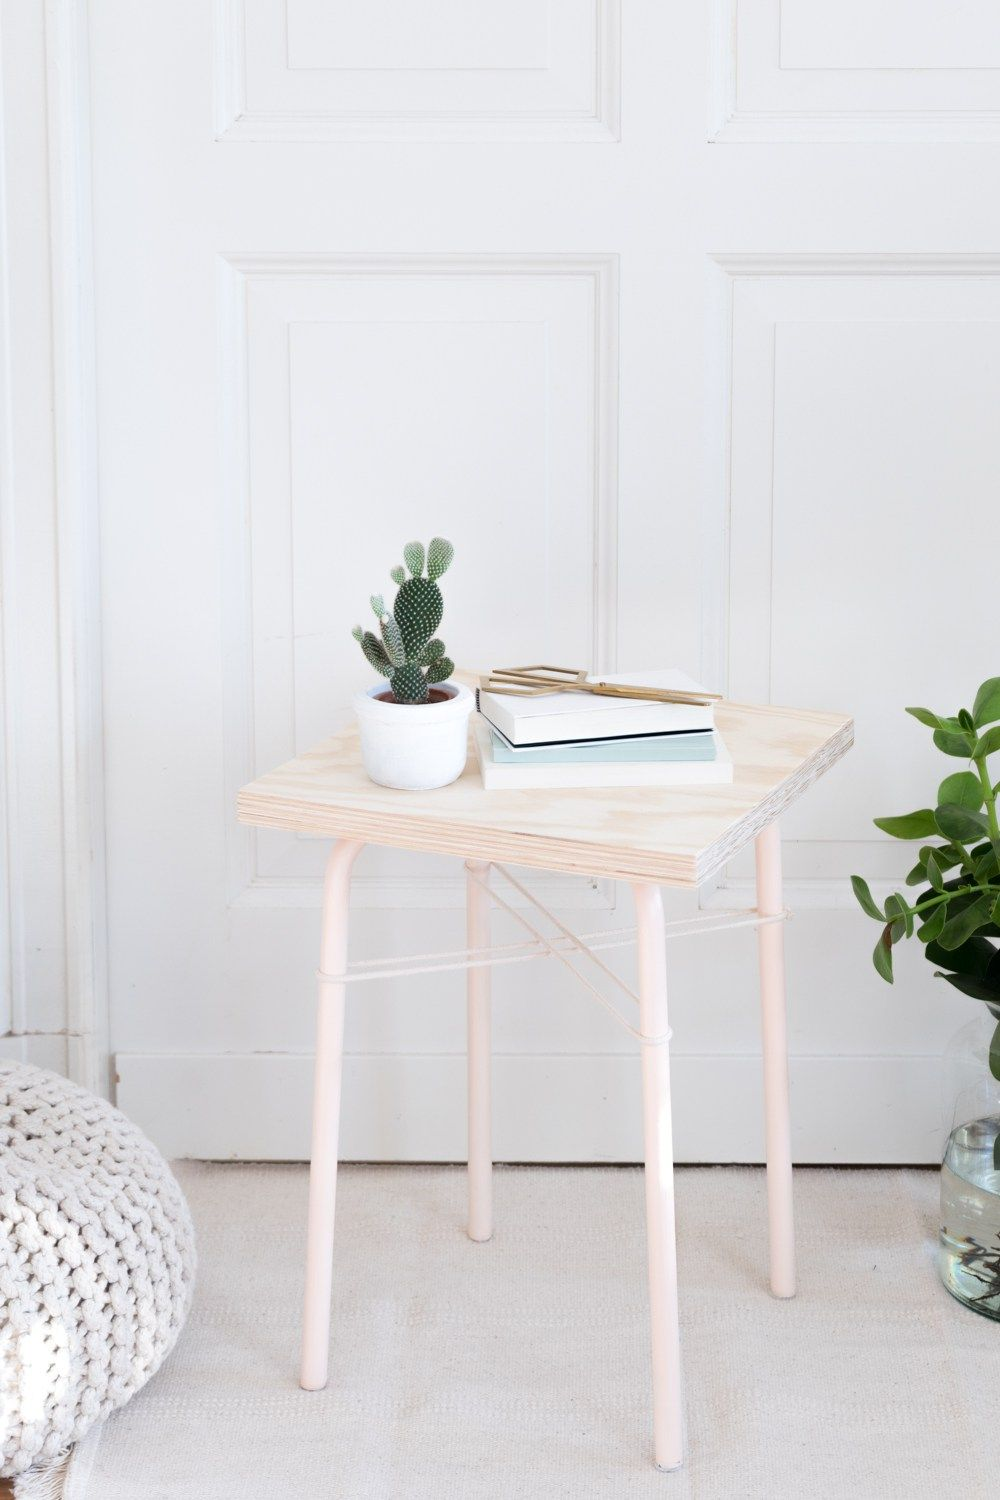 Diy Blog Möbel Easy Ikea Hack Mit Hocker Marius Nude Plywood